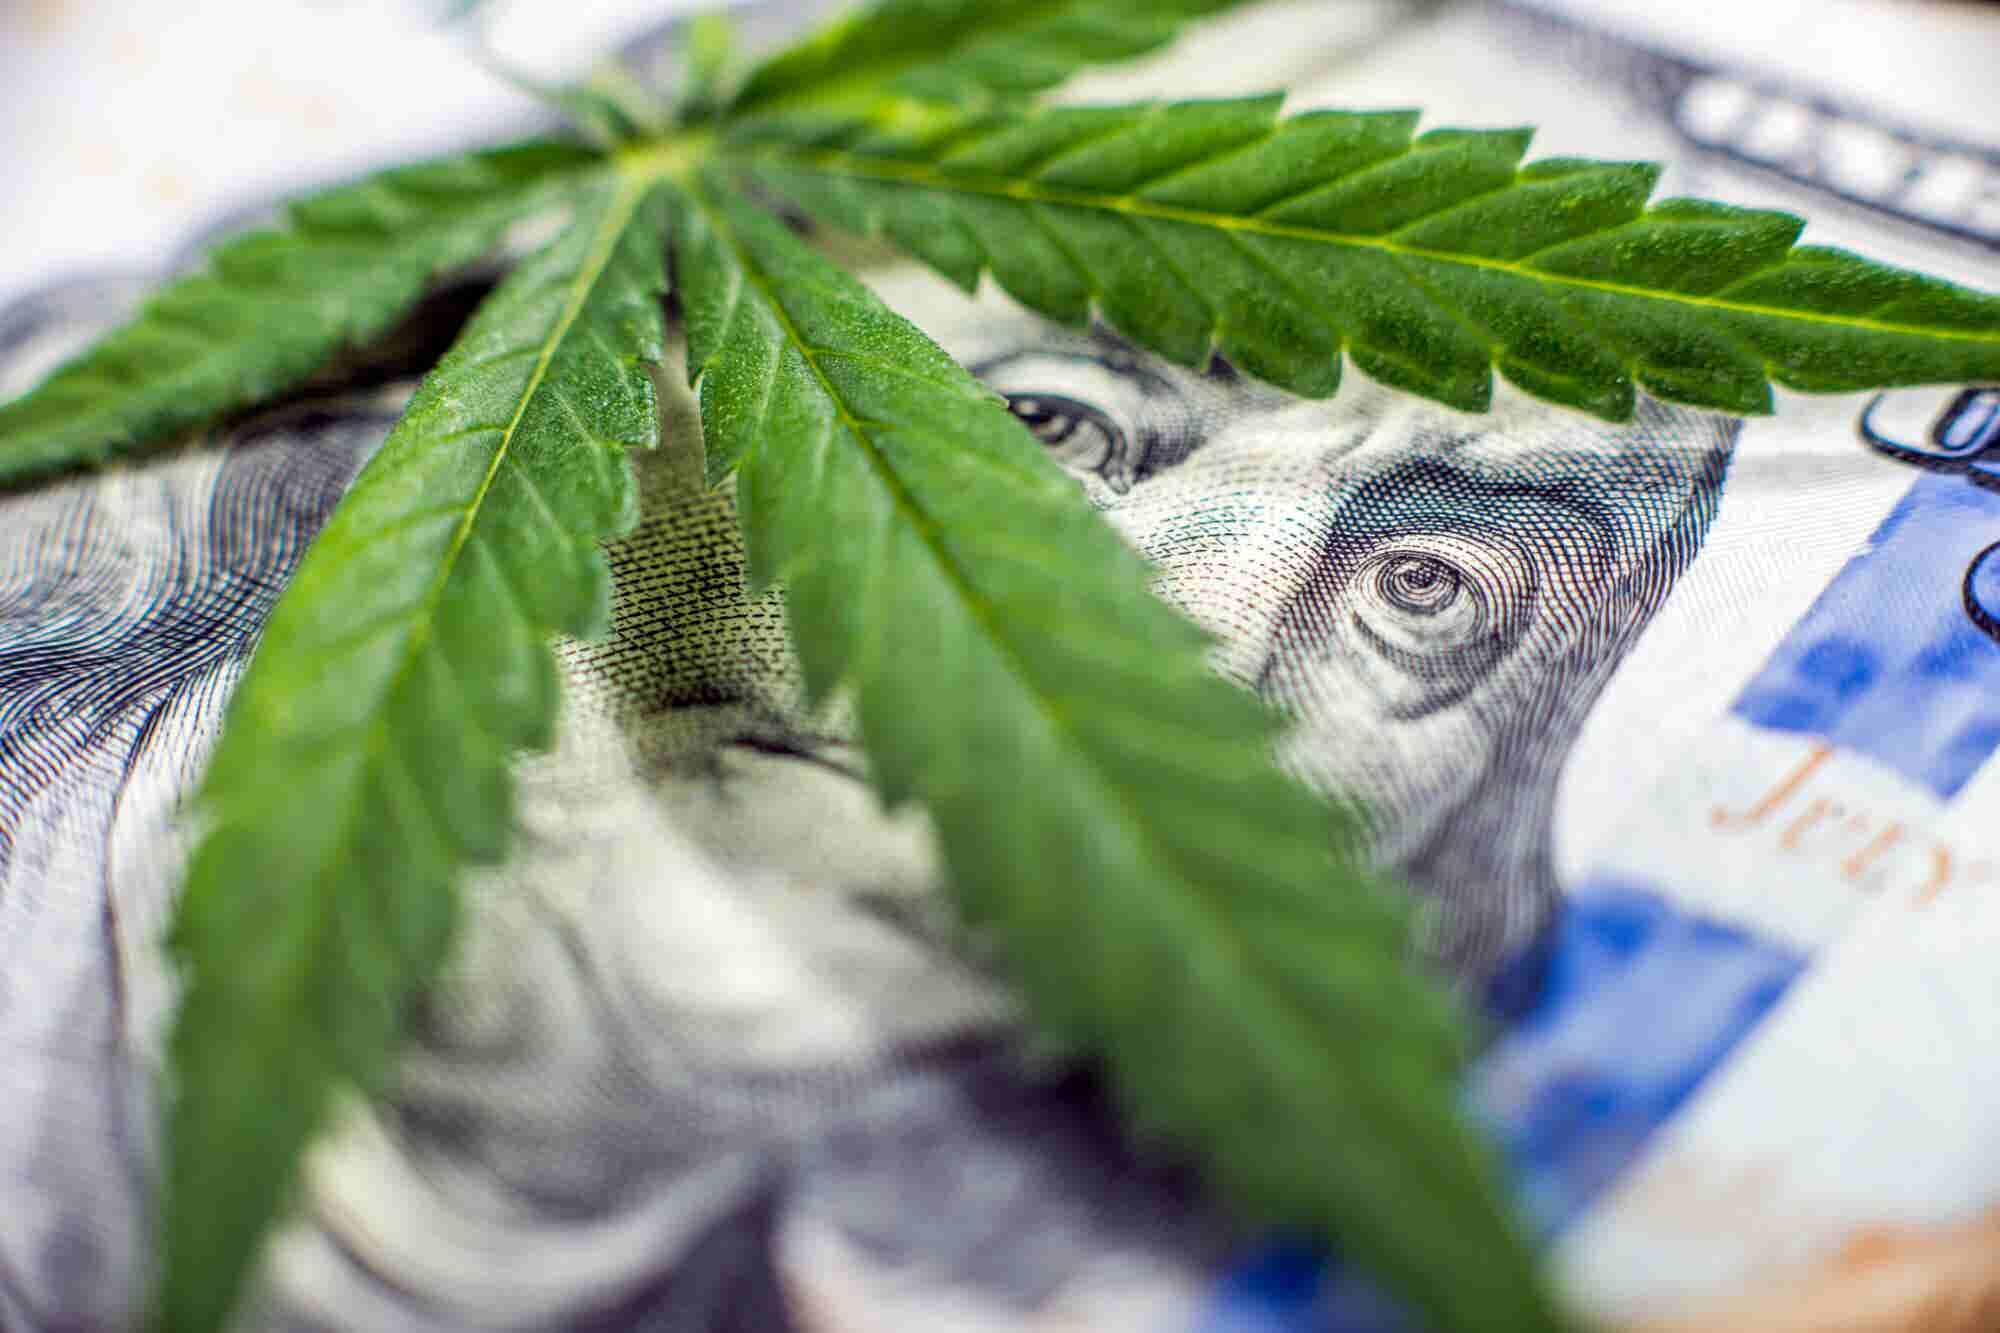 Big Business is Cashing In On the Cannabis-Fueled Green Rush